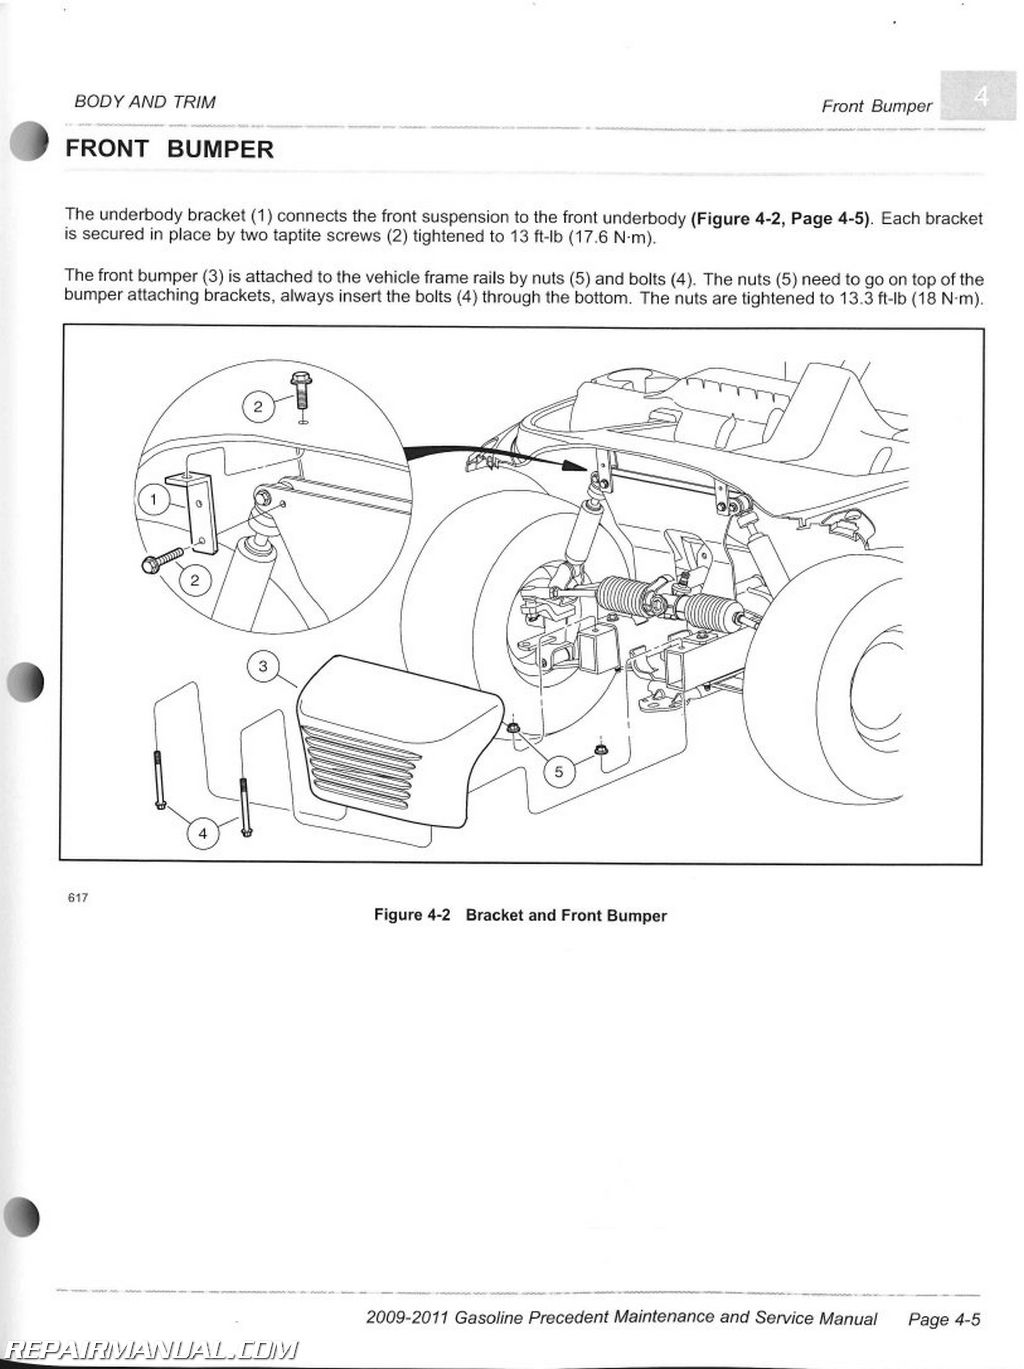 Wiring diagram club car ireleast readingrat wiring diagram 2011 club car precedent the wiring diagram wiring diagram asfbconference2016 Images